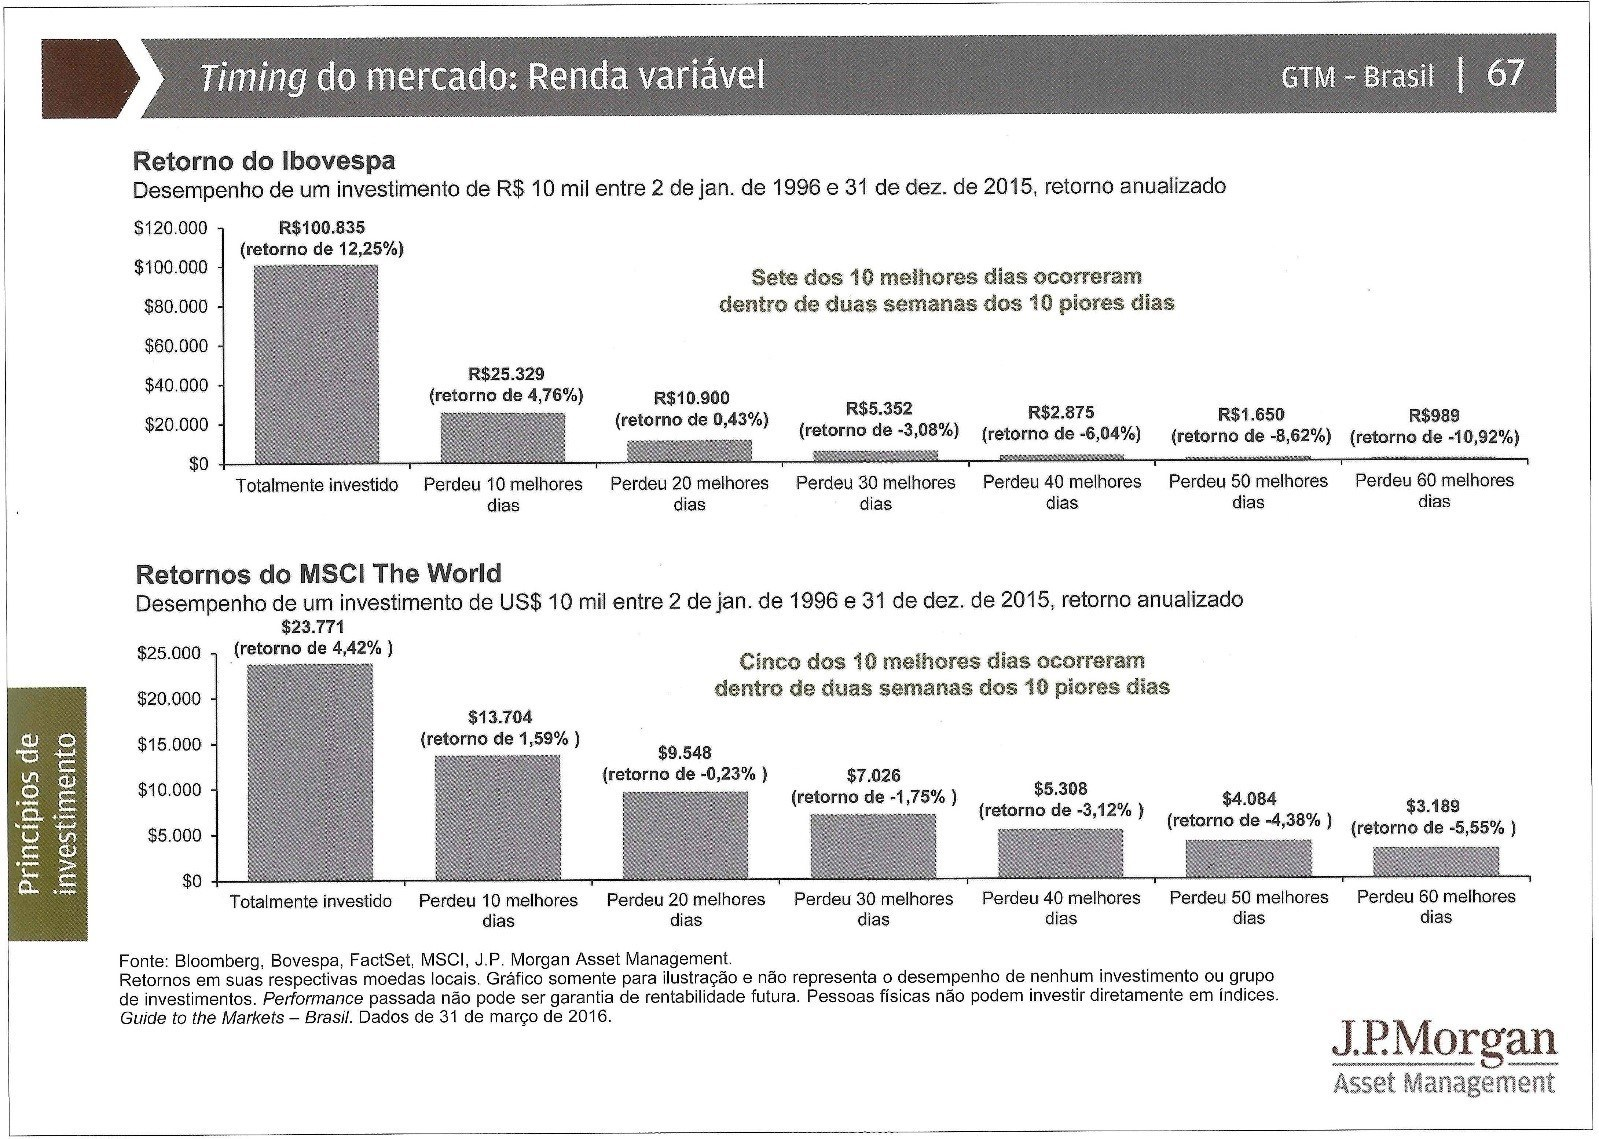 timing bolsa de valores